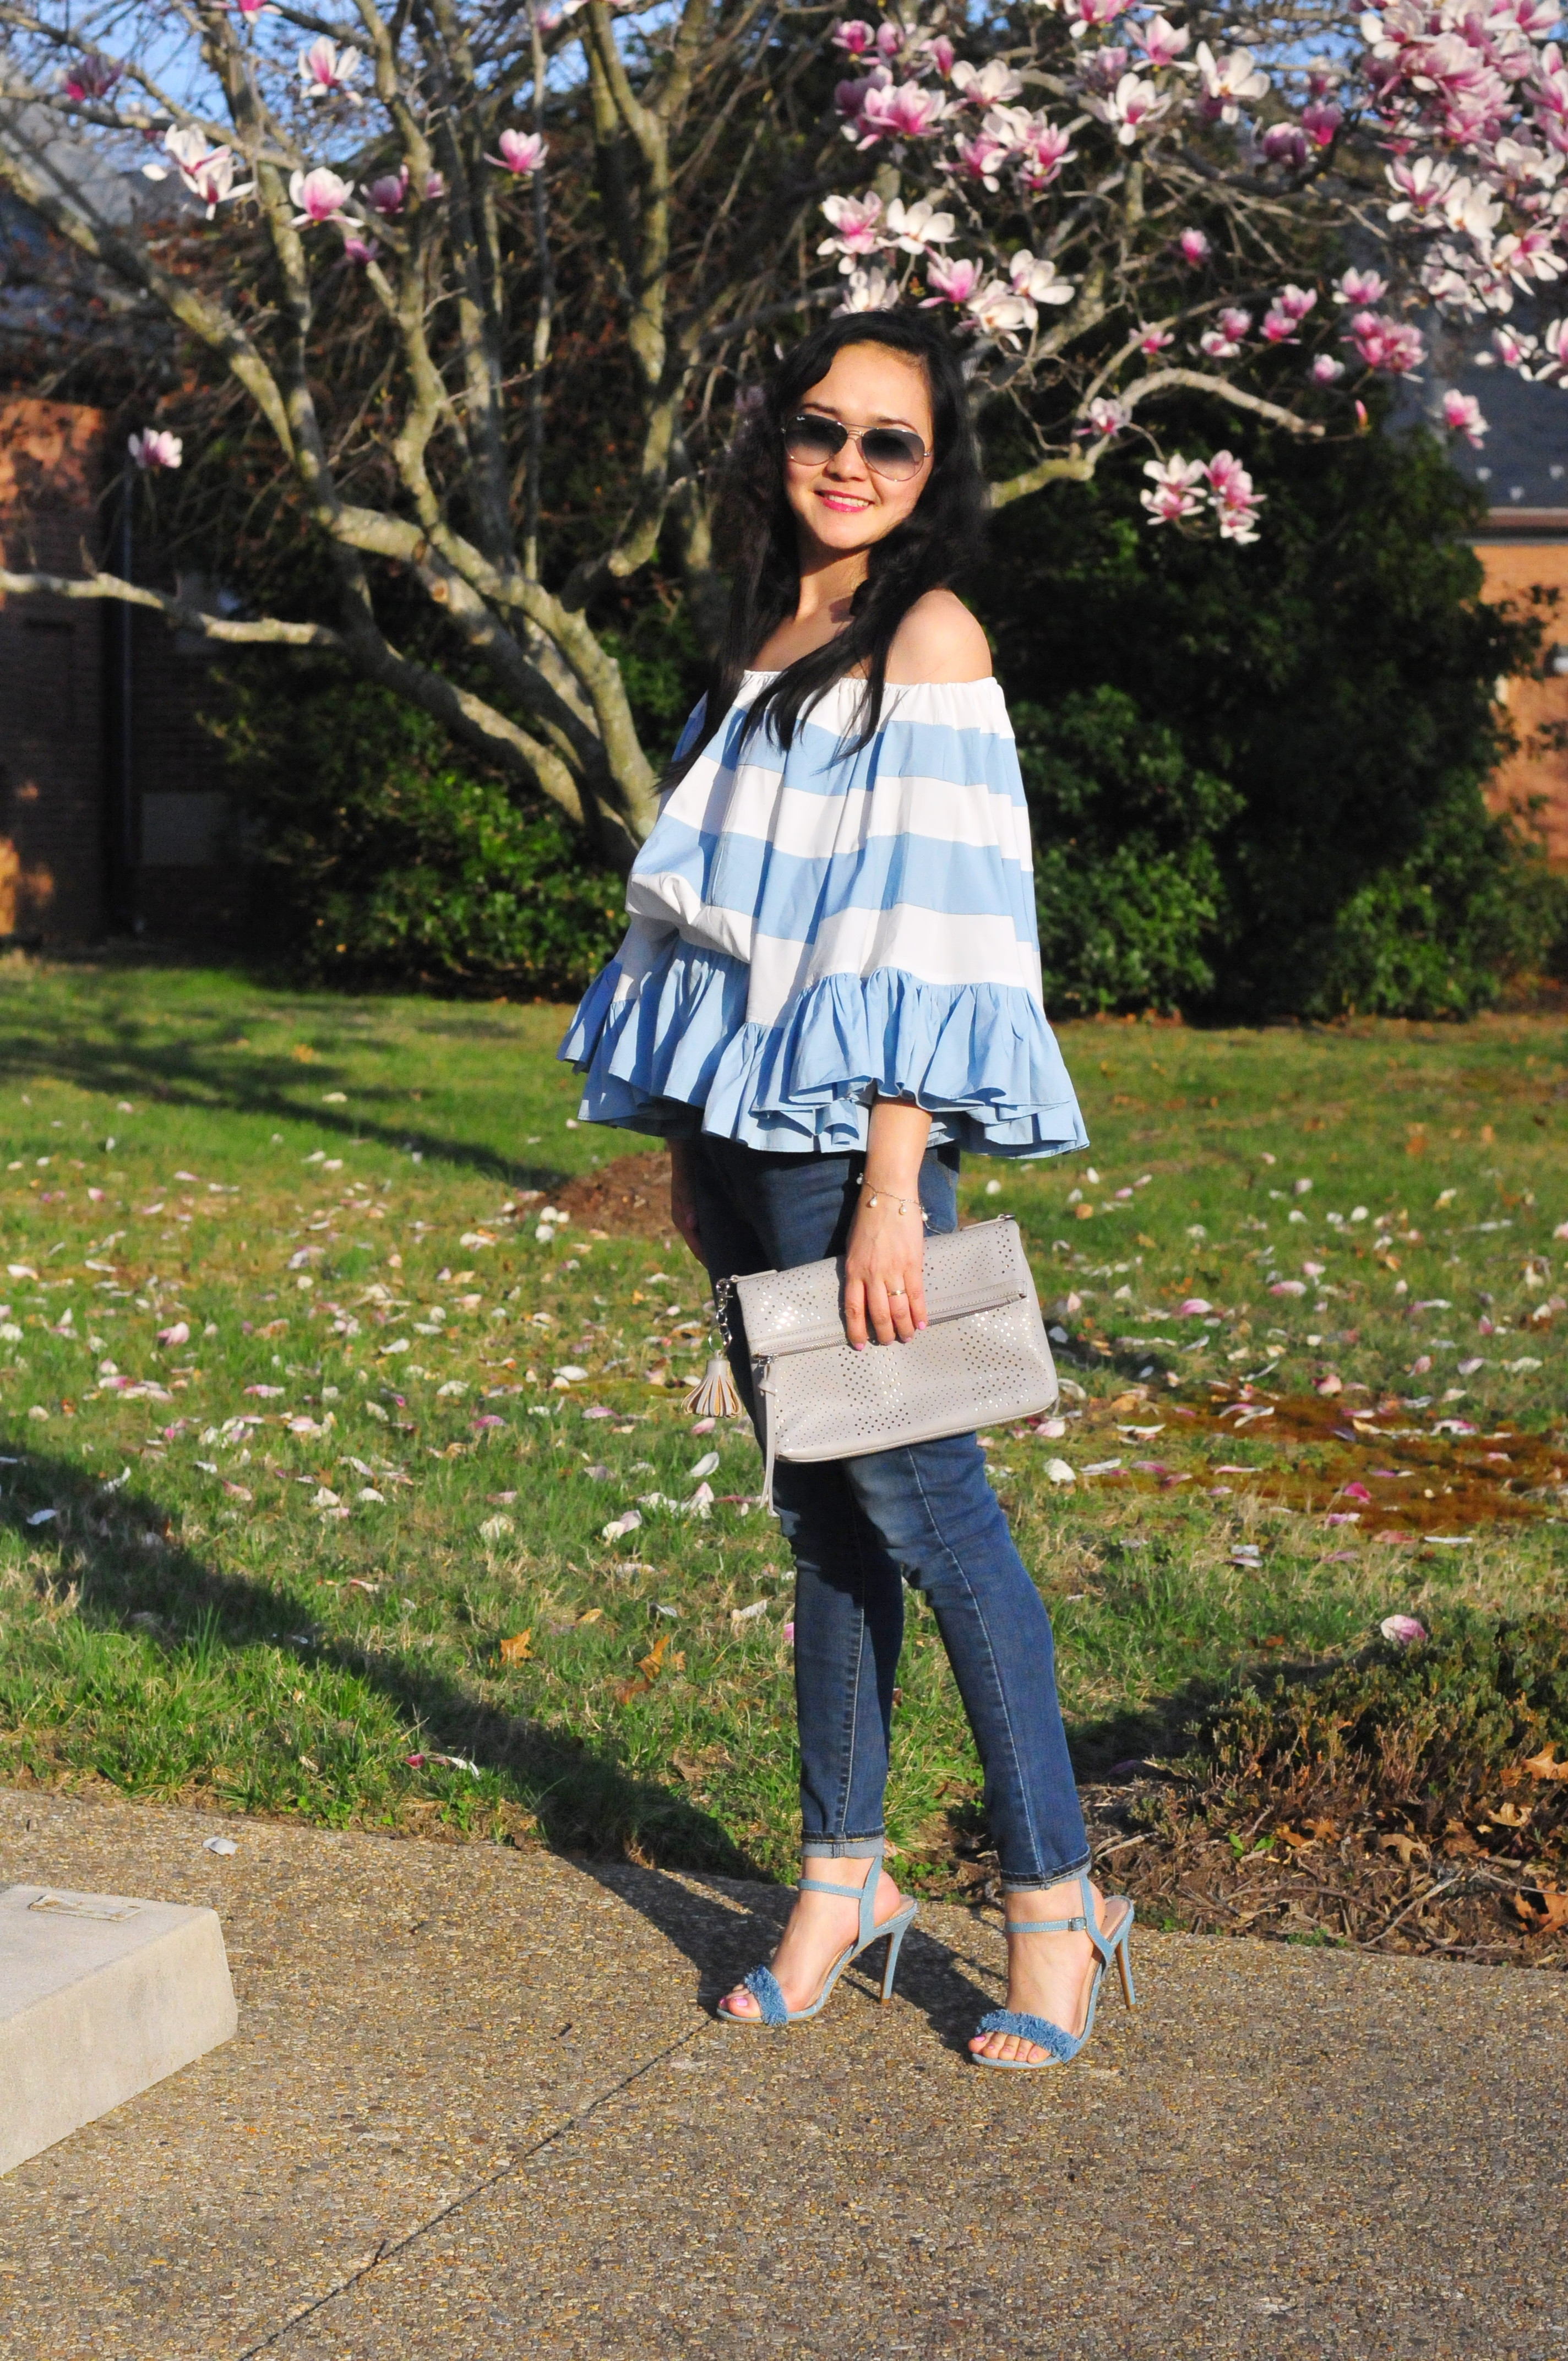 Feeling Fabulous with this Off the shoulder Ruffle stripe top